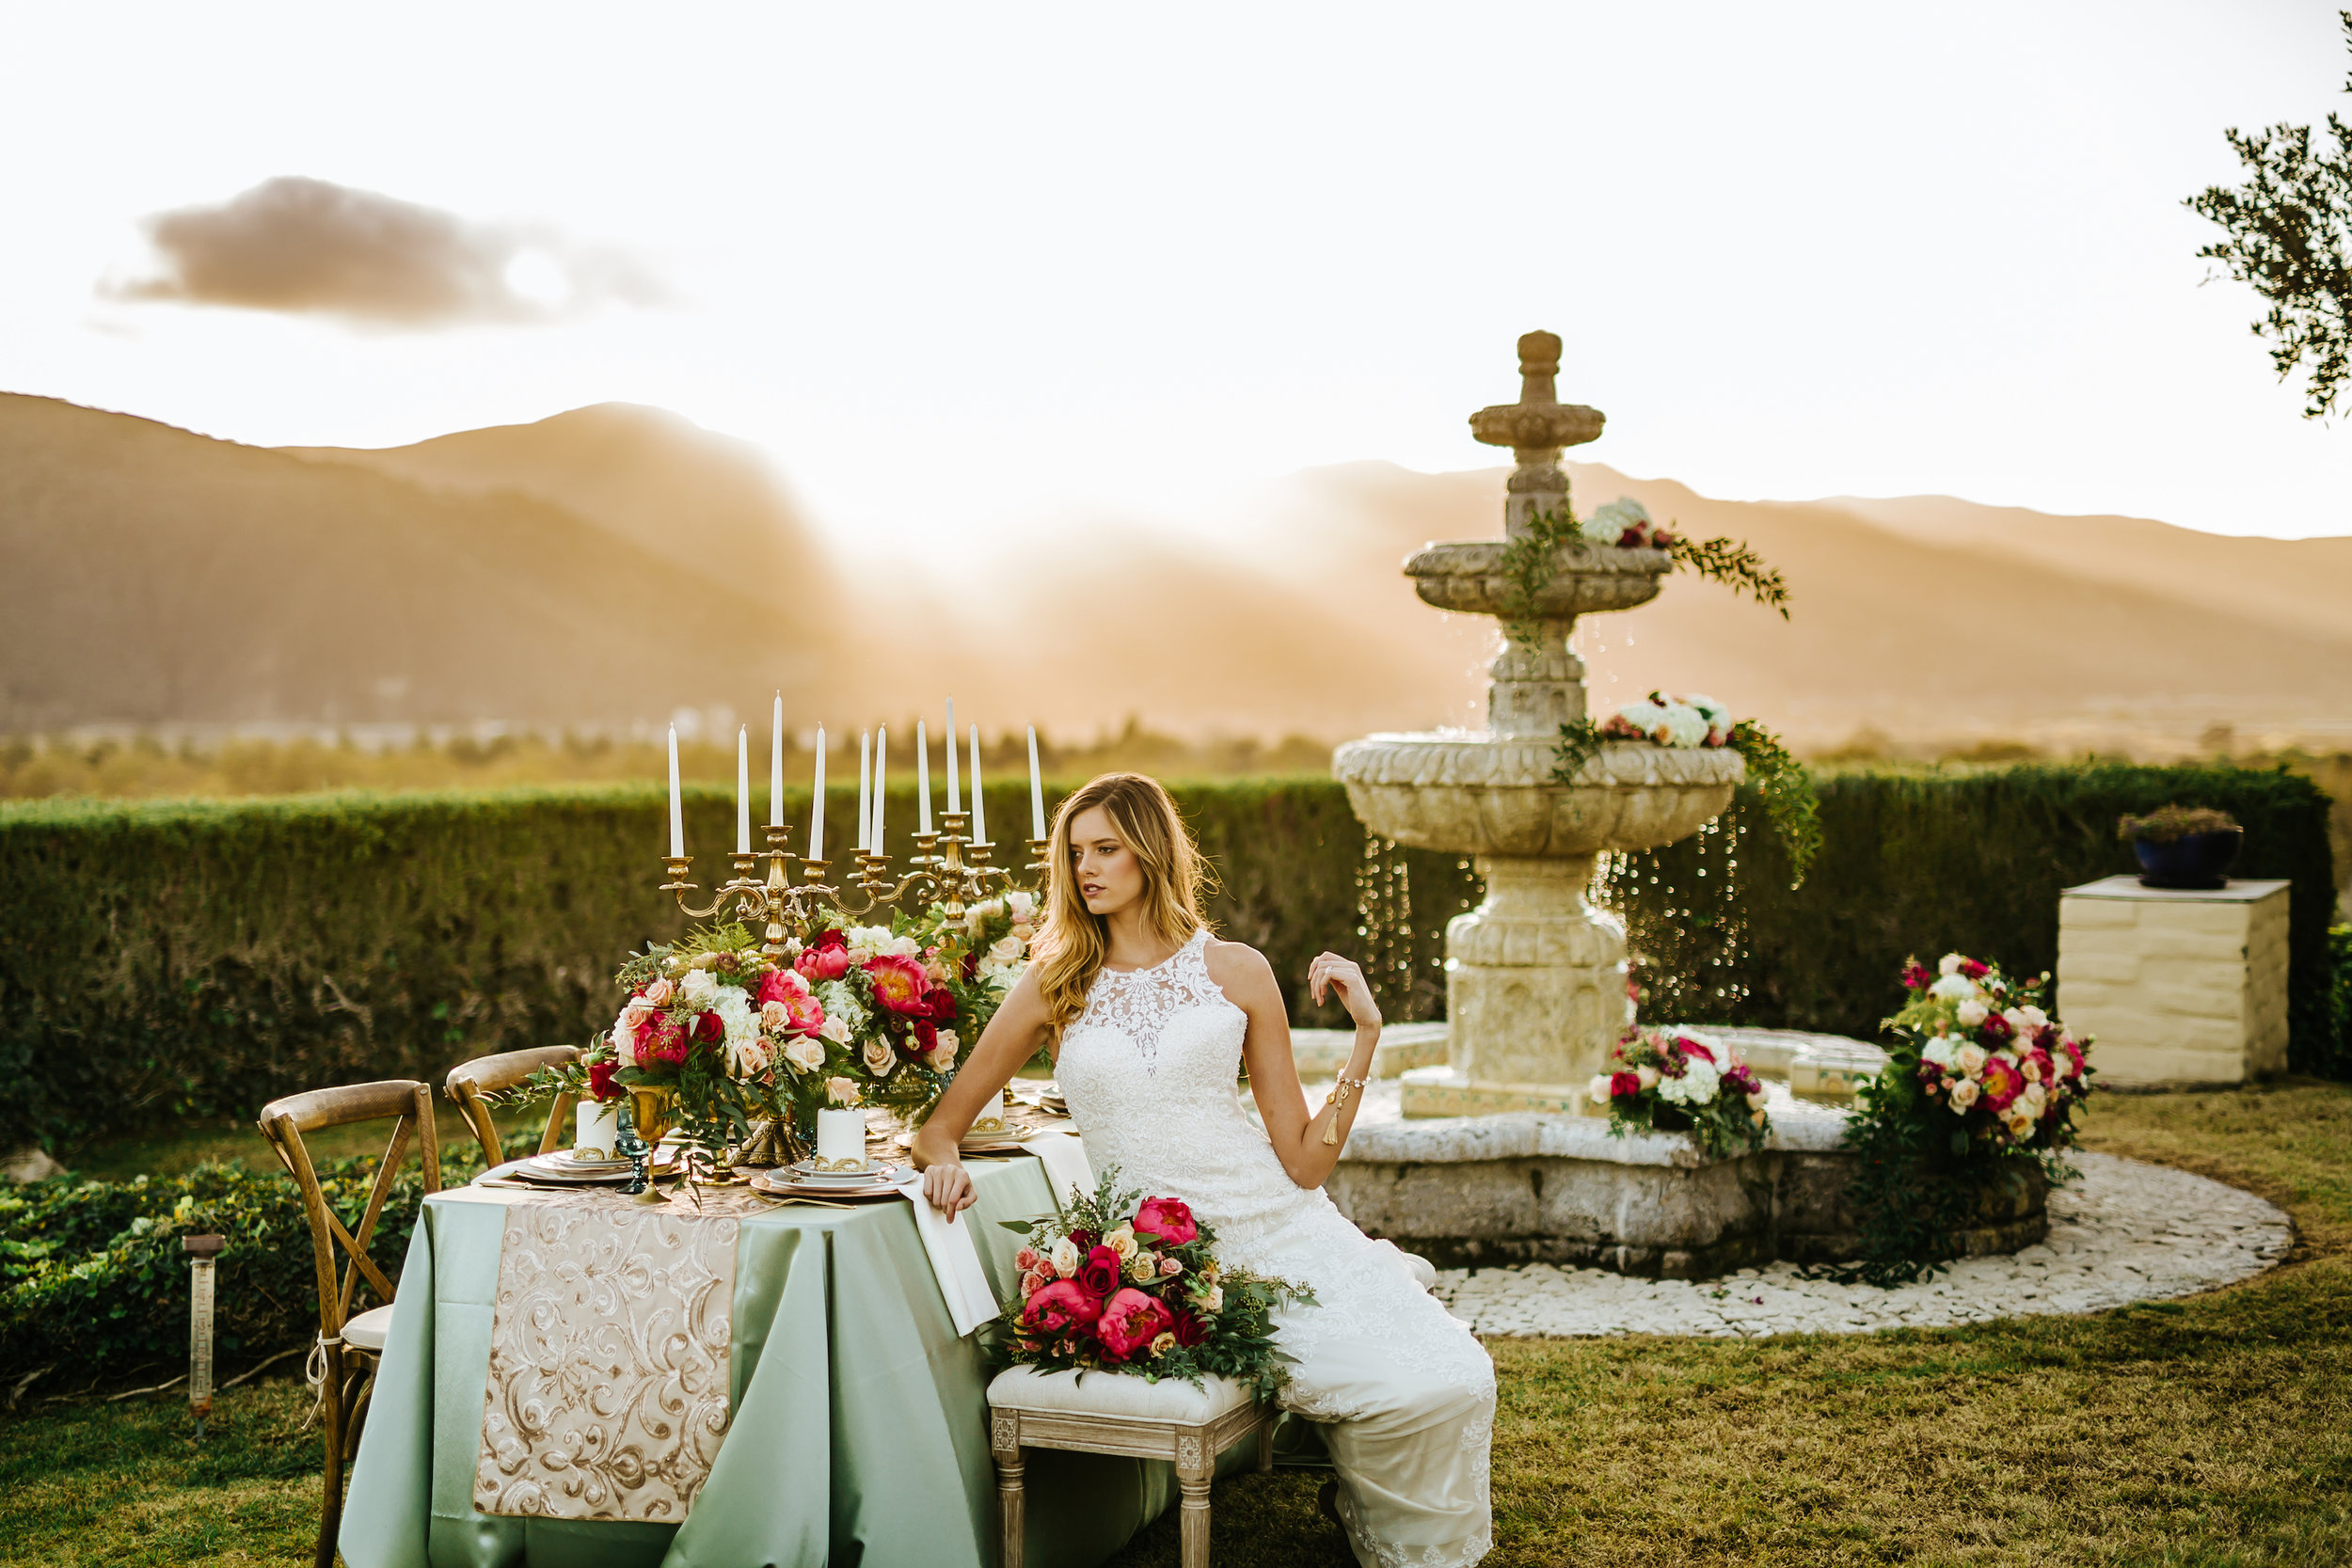 Lush Blush Whispering Rose Ranch Wedding15.jpg